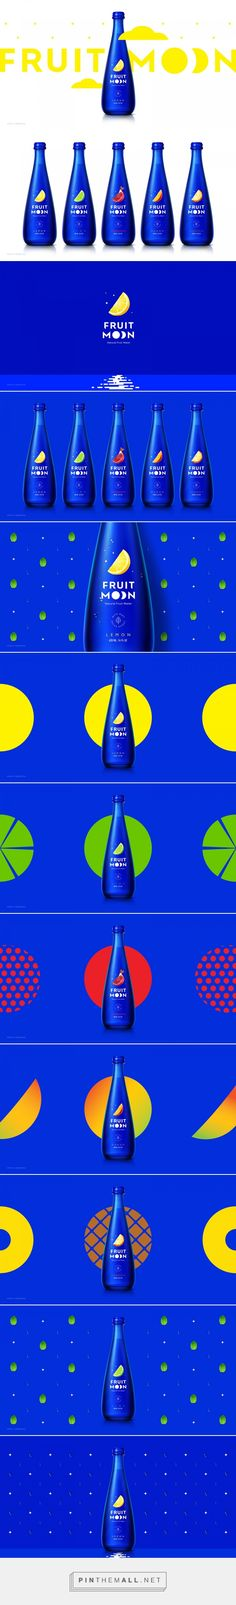 Fruit Moon beverage packaging design by Yaroslav Zheleznyakov - http://www.packagingoftheworld.com/2017/06/fruit-moon.html